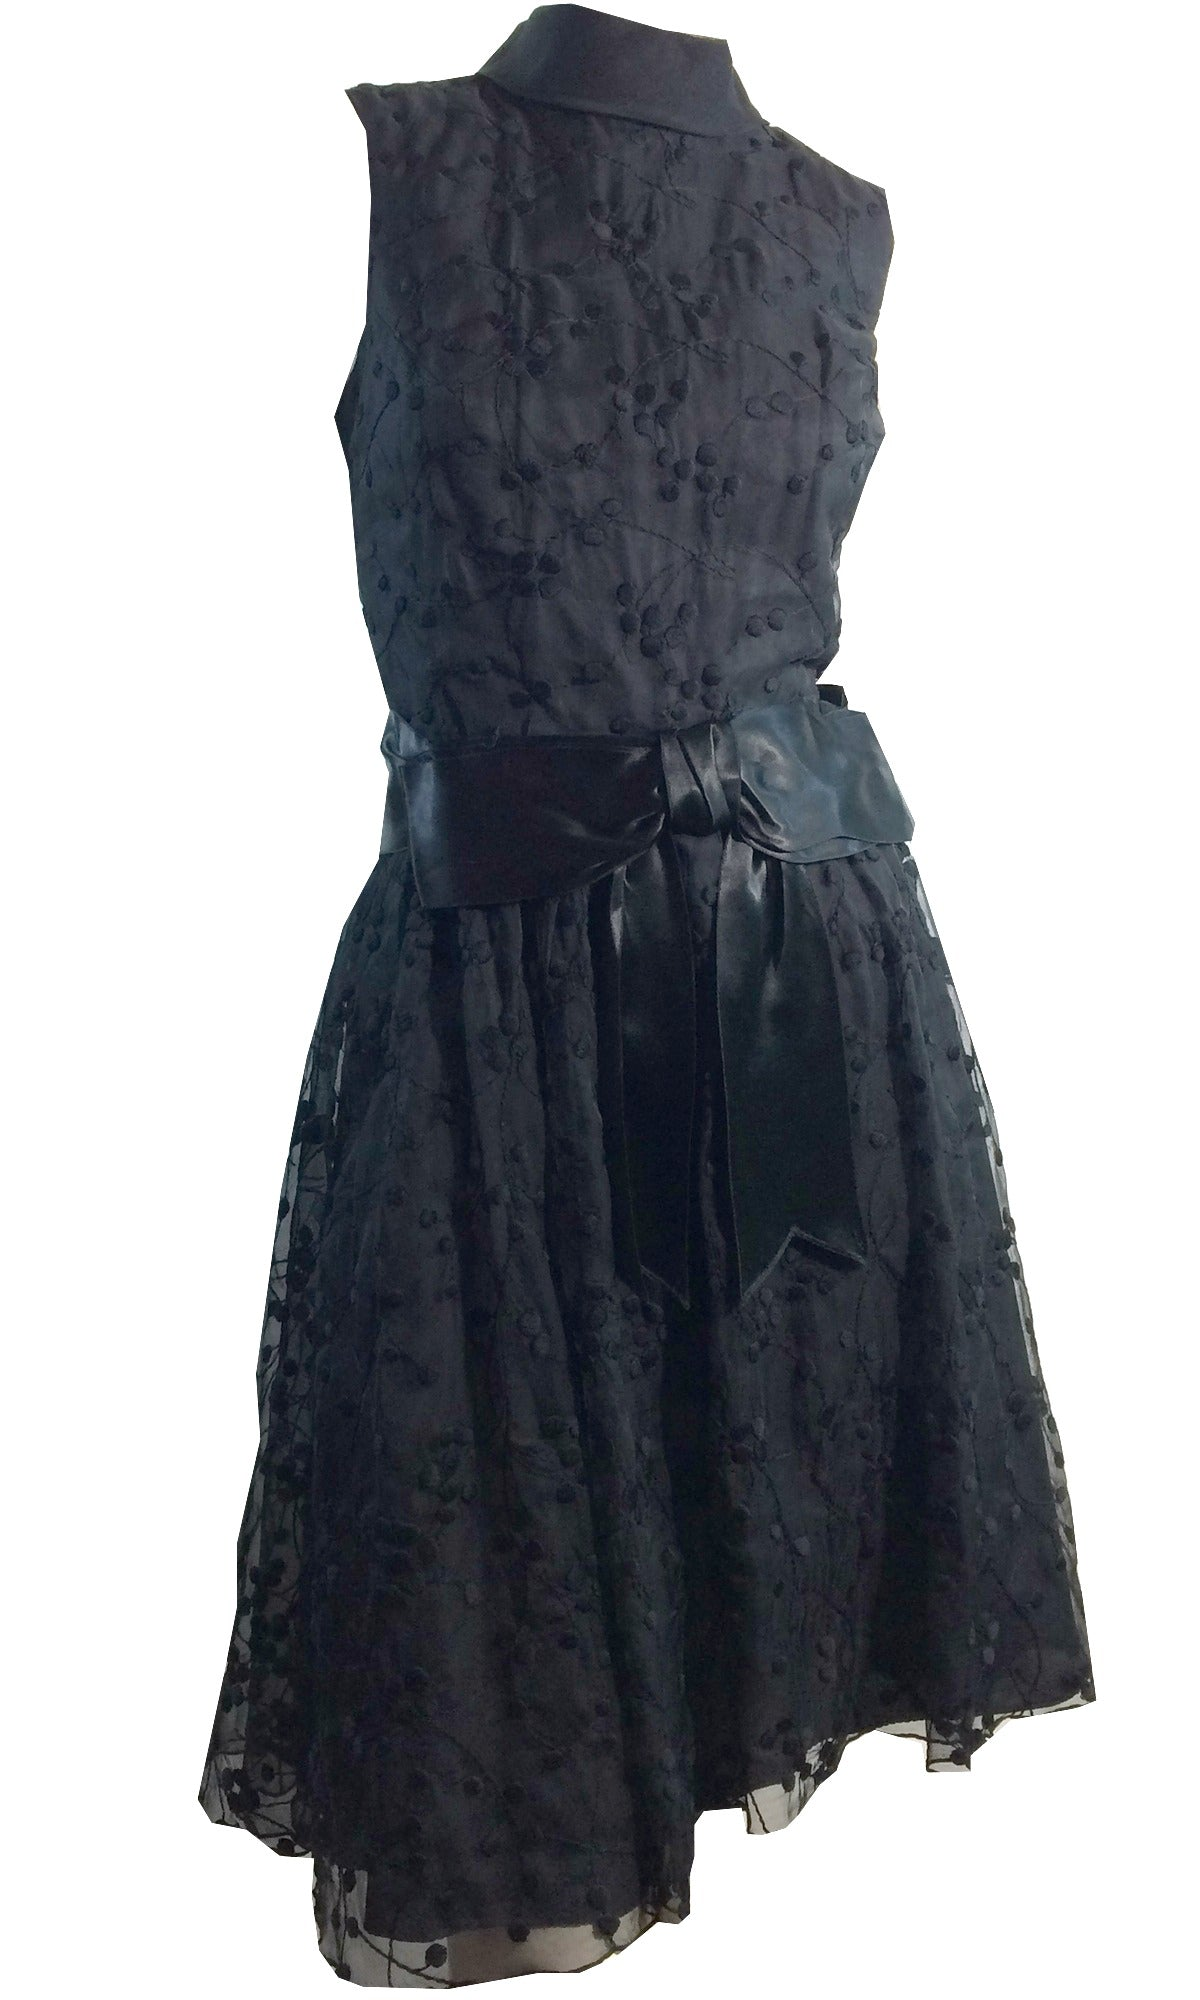 Eyelet Chiffon and Satin Bow Trimmed Sleeveless Cocktail Dress circa 1960s